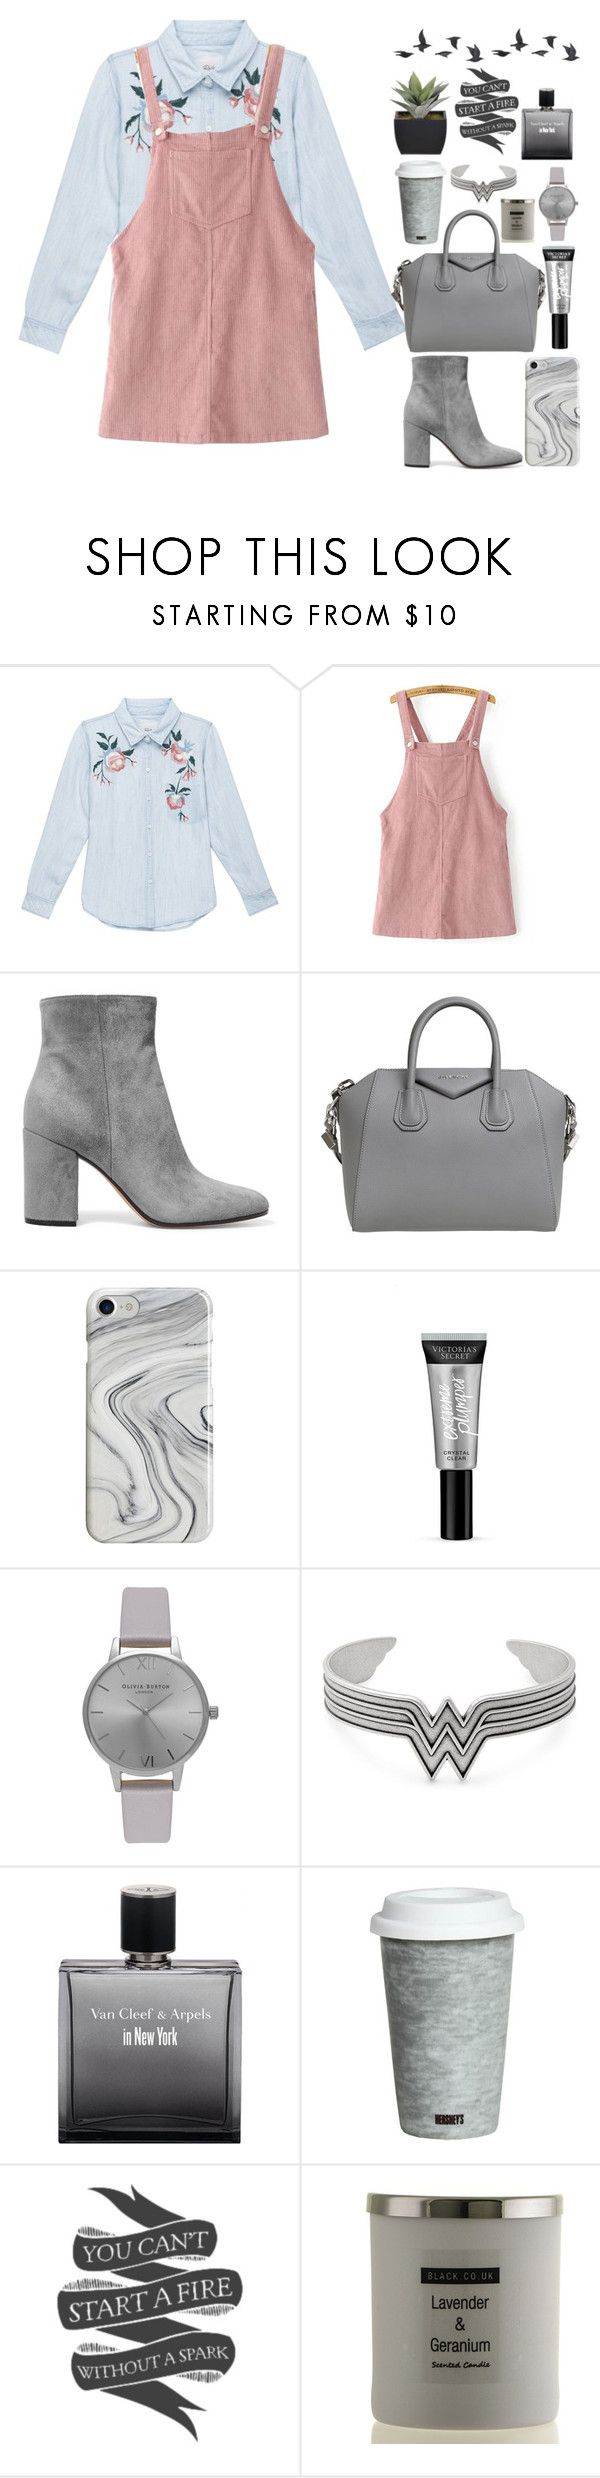 """Untitled #39"" by violentnoise ❤ liked on Polyvore featuring Rails, WithChic, Gianvito Rossi, Givenchy, Recover, Victoria's Secret, Olivia Burton, Alex and Ani, Fitz & Floyd and Native State"